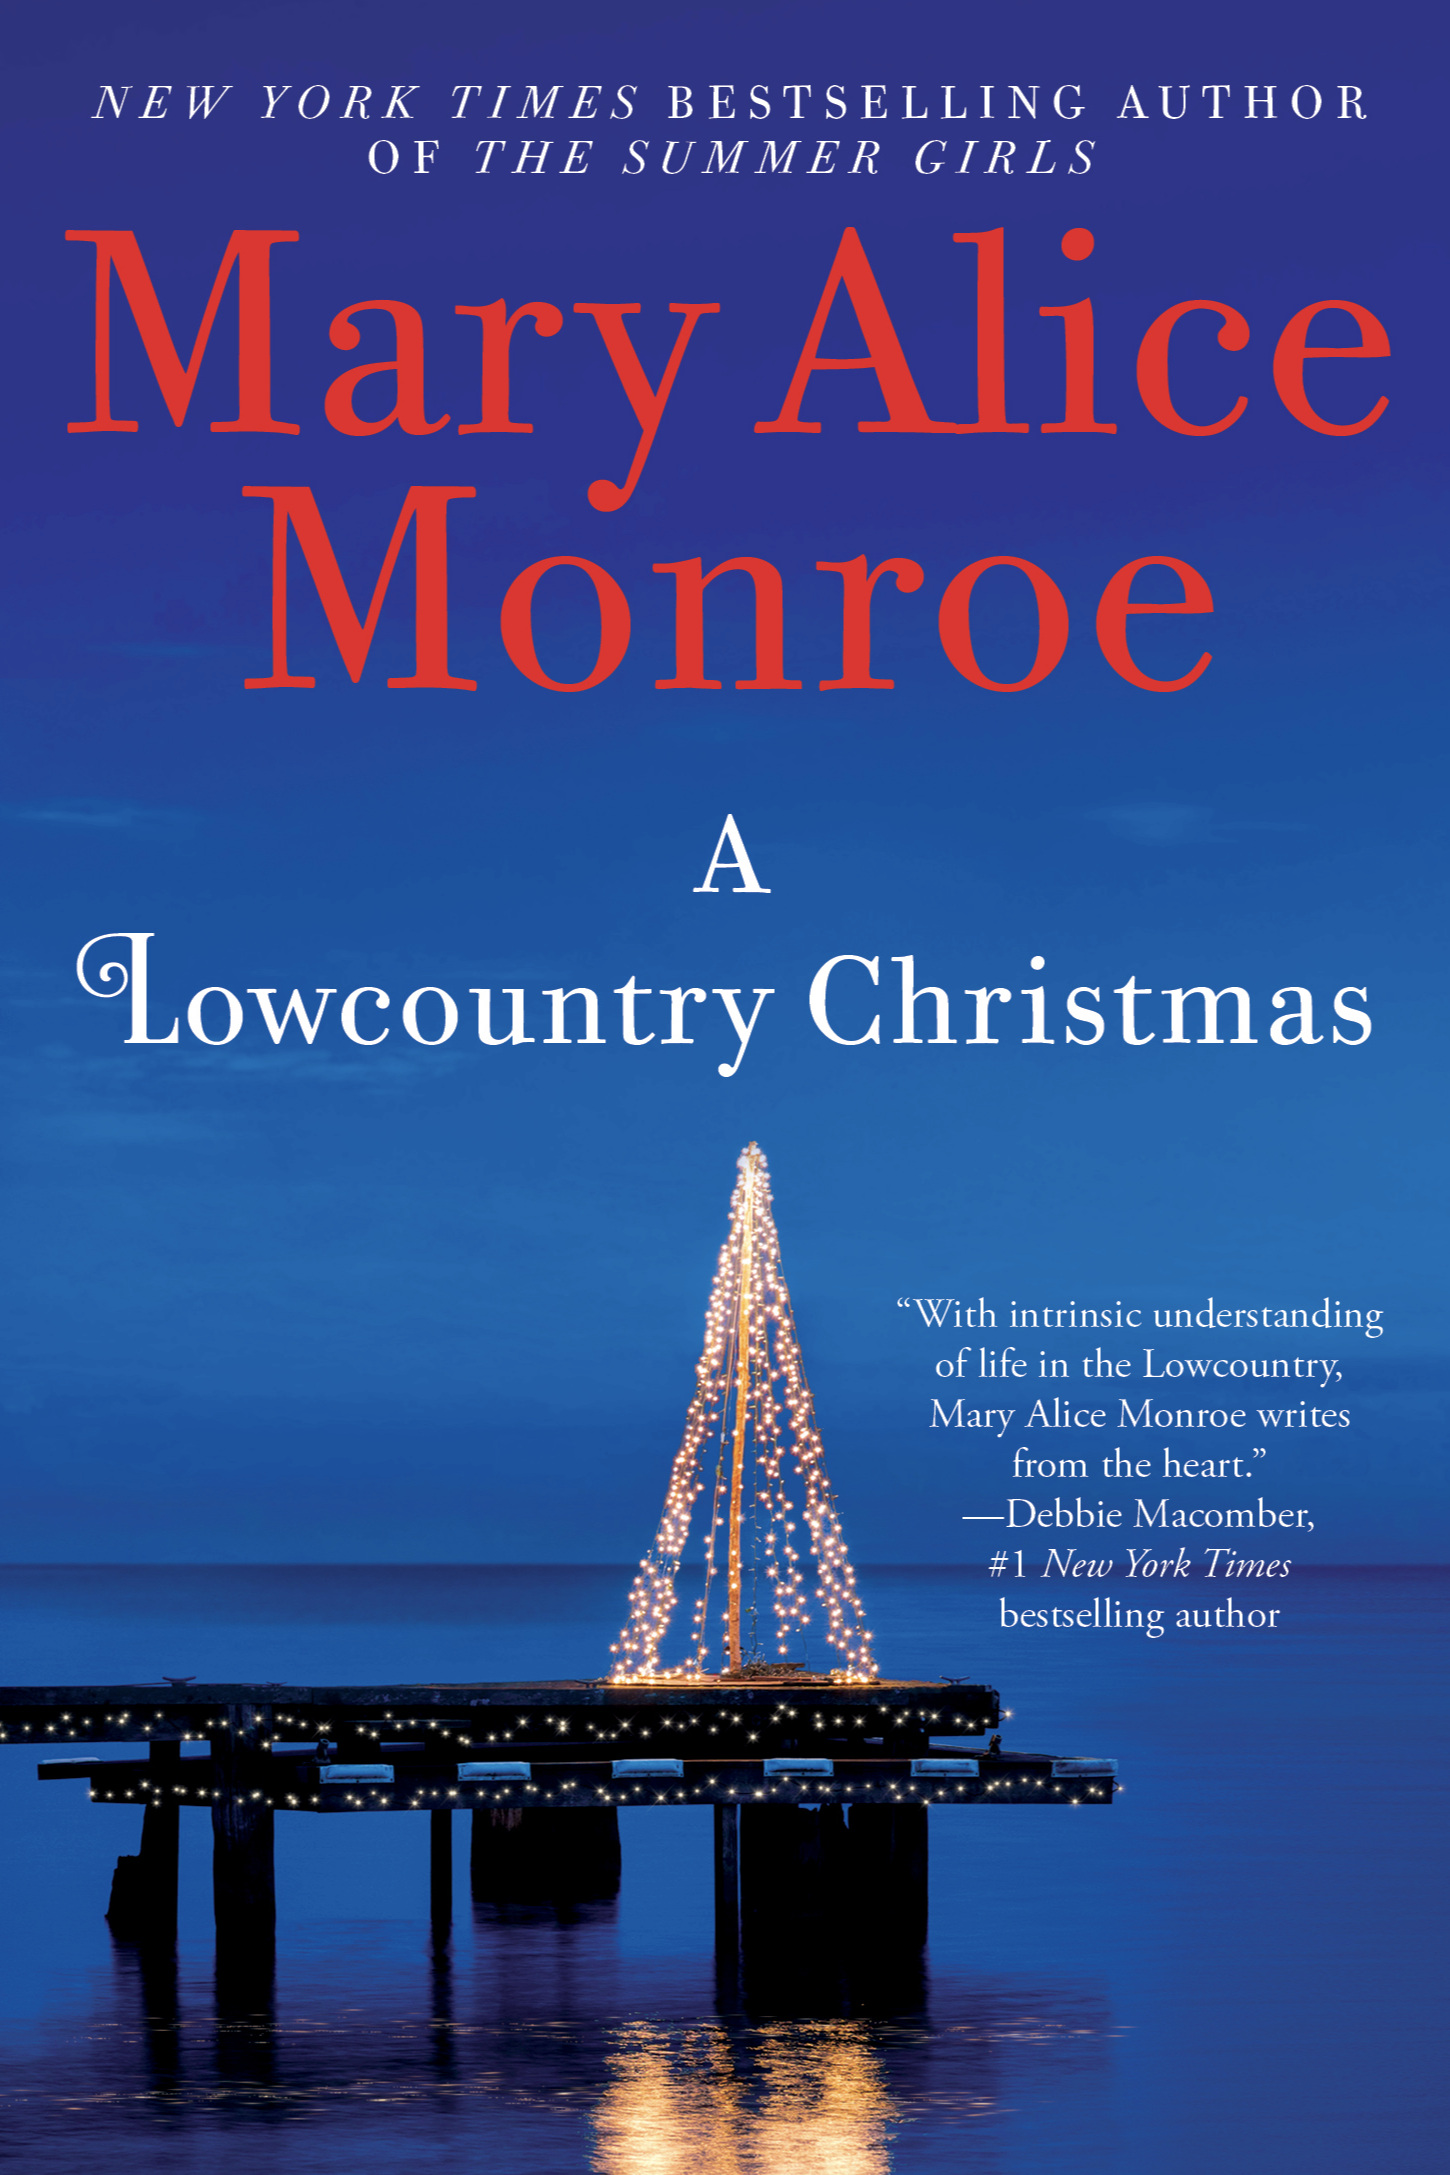 A-Lowcountry-Christmas-Mary-Alice-Monroe.jpg